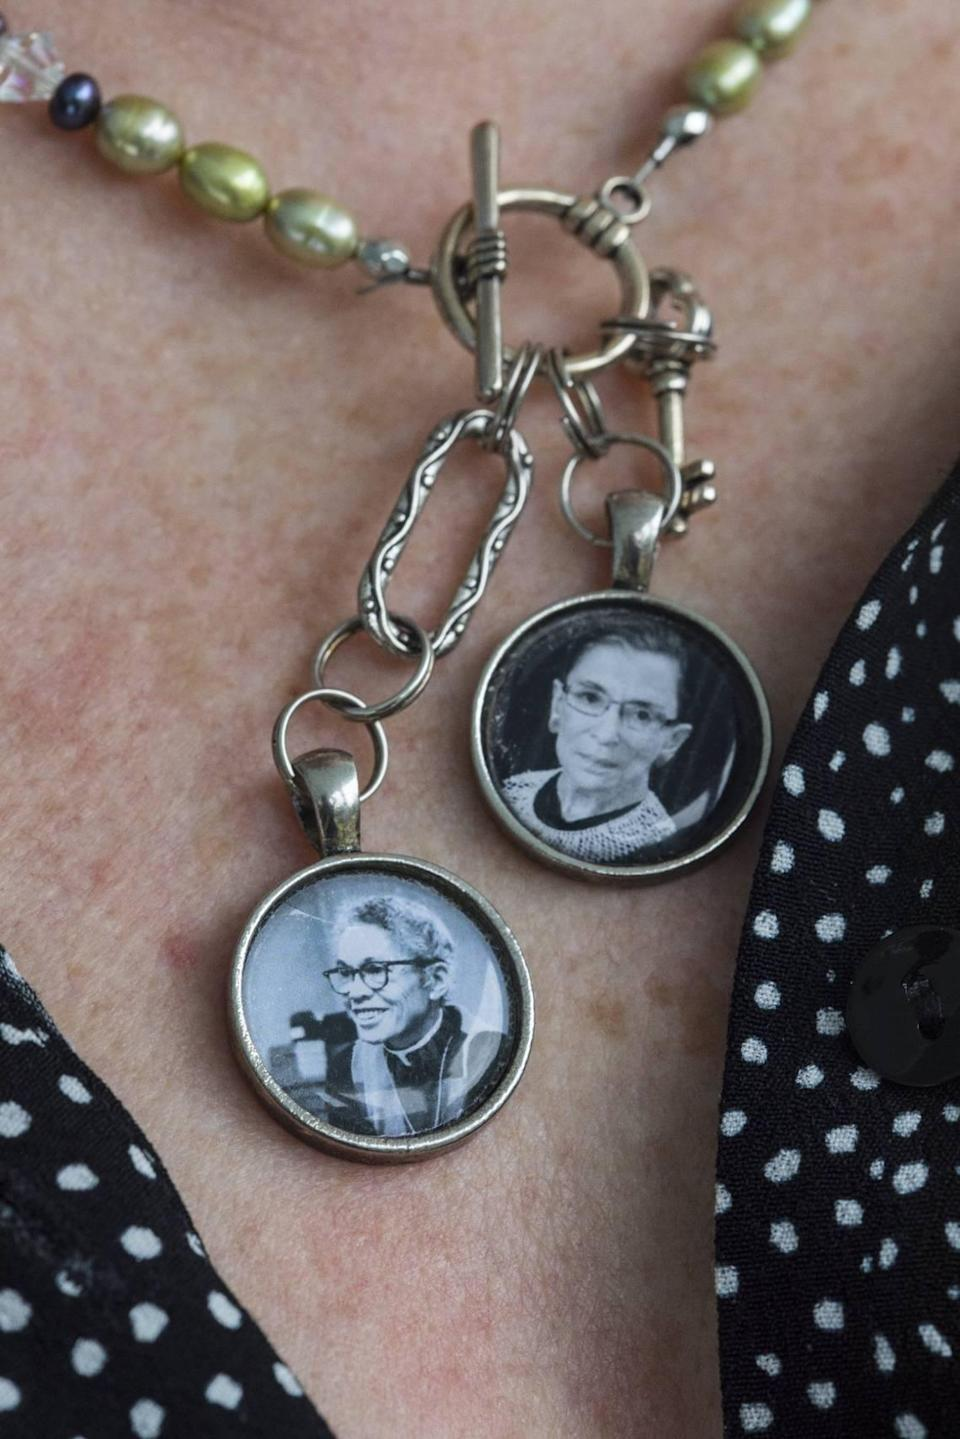 Barbara Lau wears a necklace with images of Pauli Murray and Ruth Bader Ginsburg, pictured here on Tuesday, Sept. 21, 2021 at the Pauli Murray Center for History and Social Justice in Durham, N.C.